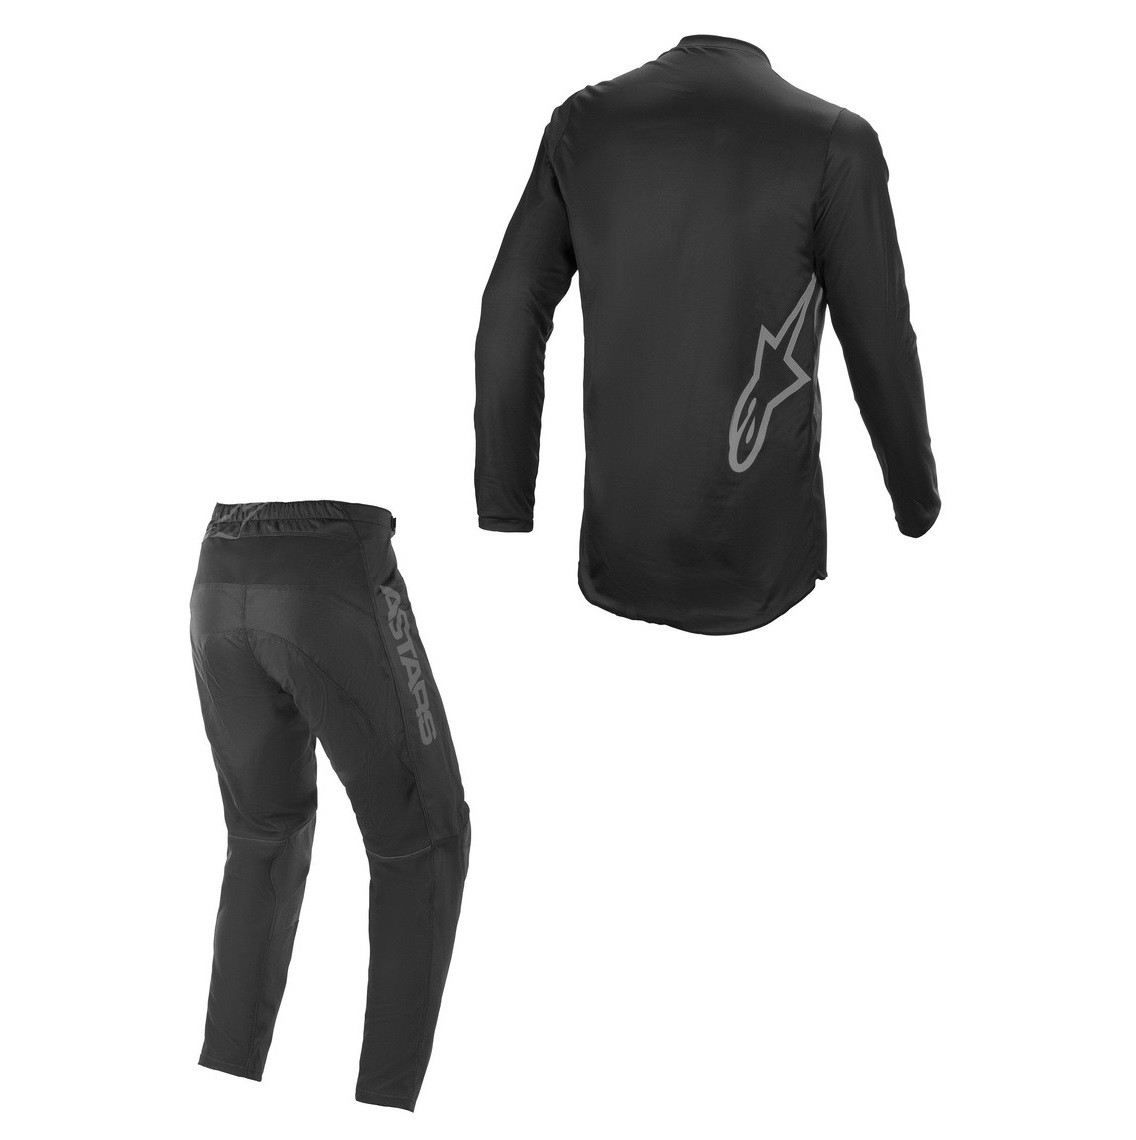 Kit Calça + Camisa Alpinestars Fluid Graphite